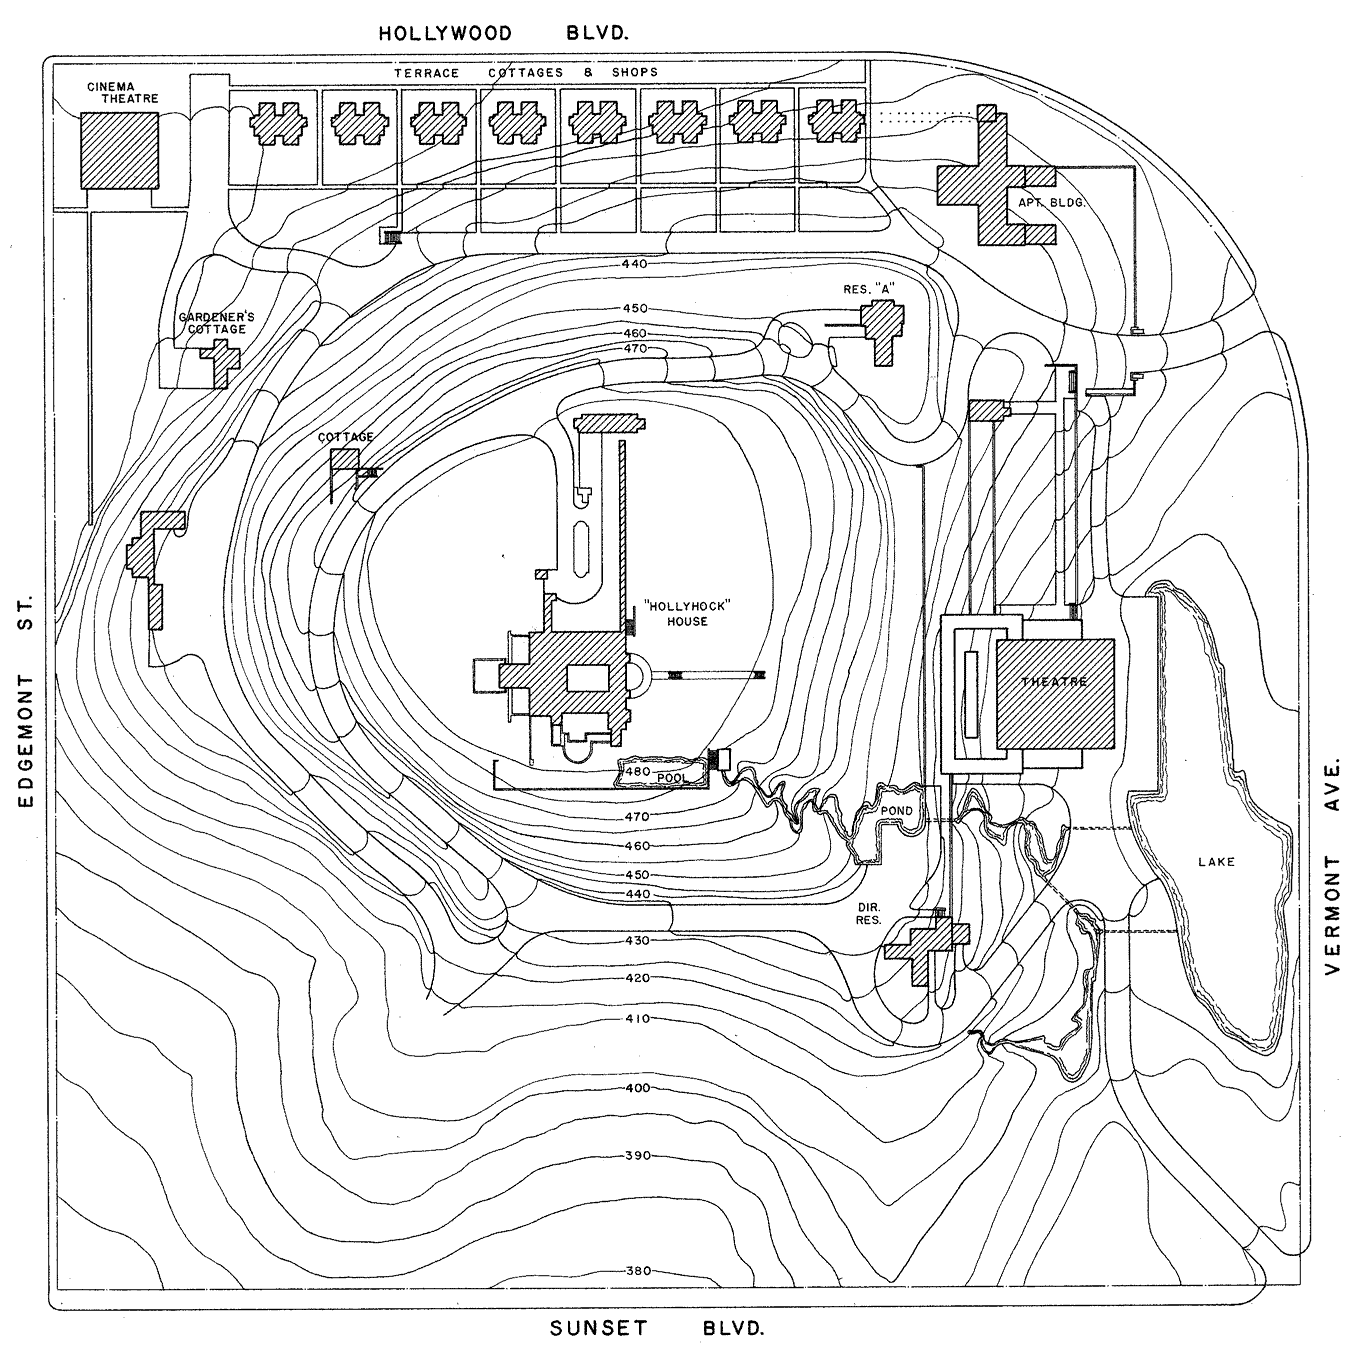 FileBarnsdaleParkPlotPlanpng Wikimedia Commons – Plot Plan And Site Plan